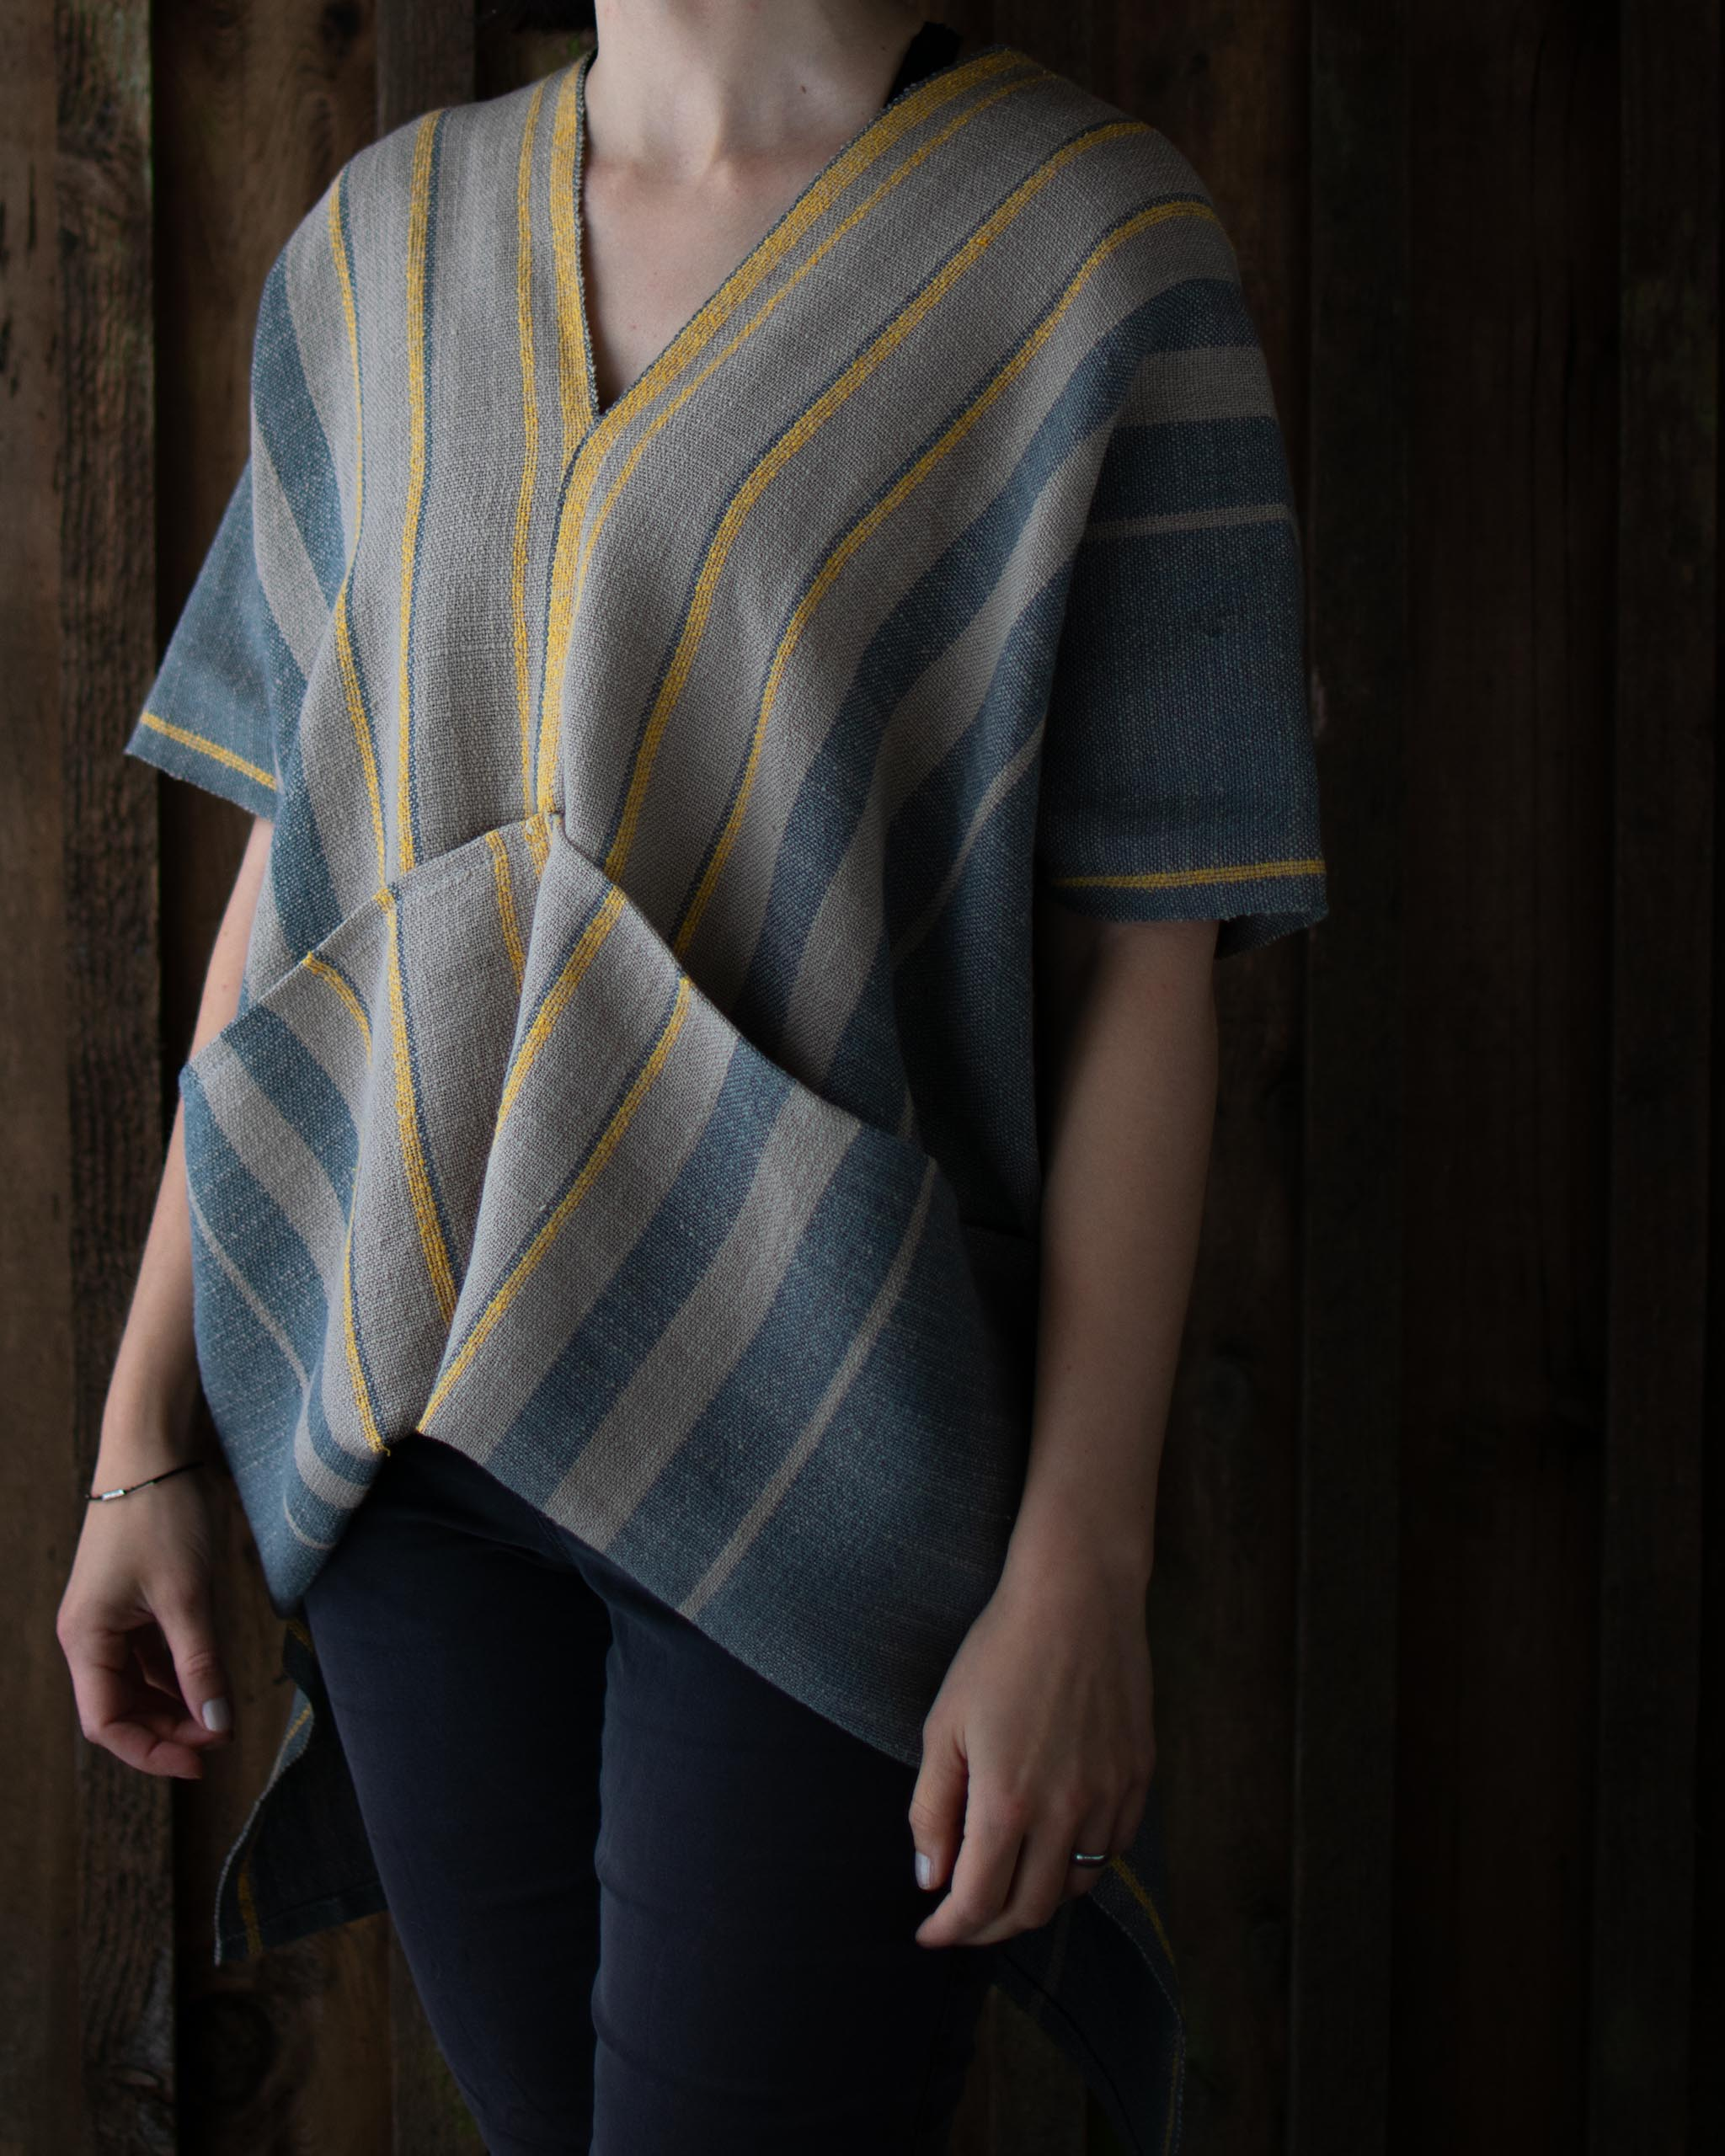 Handwoven Cotton and Linen Spring Tunic Top by Black Birch Textiles